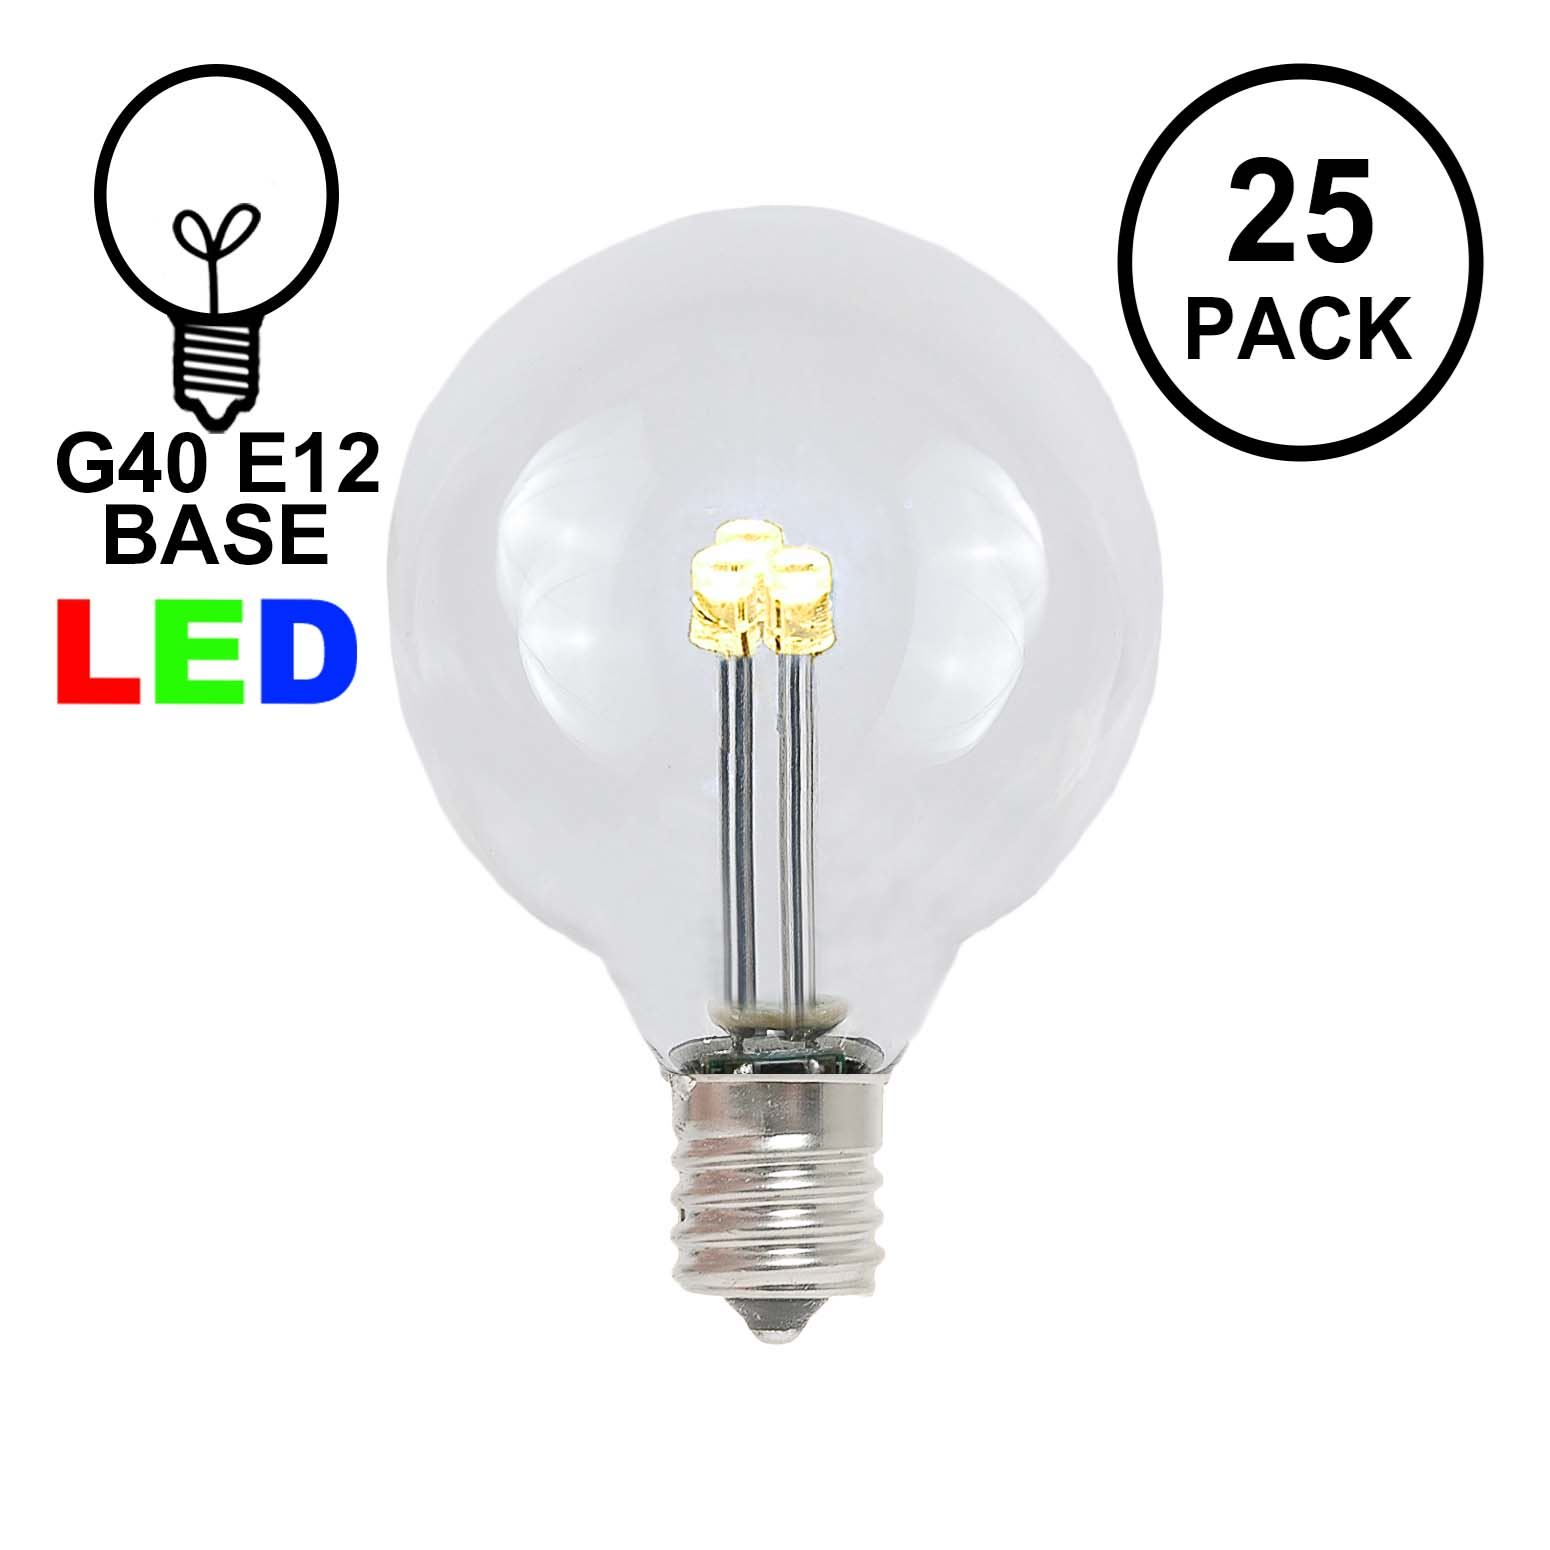 hight resolution of picture of warm white g40 glass led replacement bulbs 25 pack